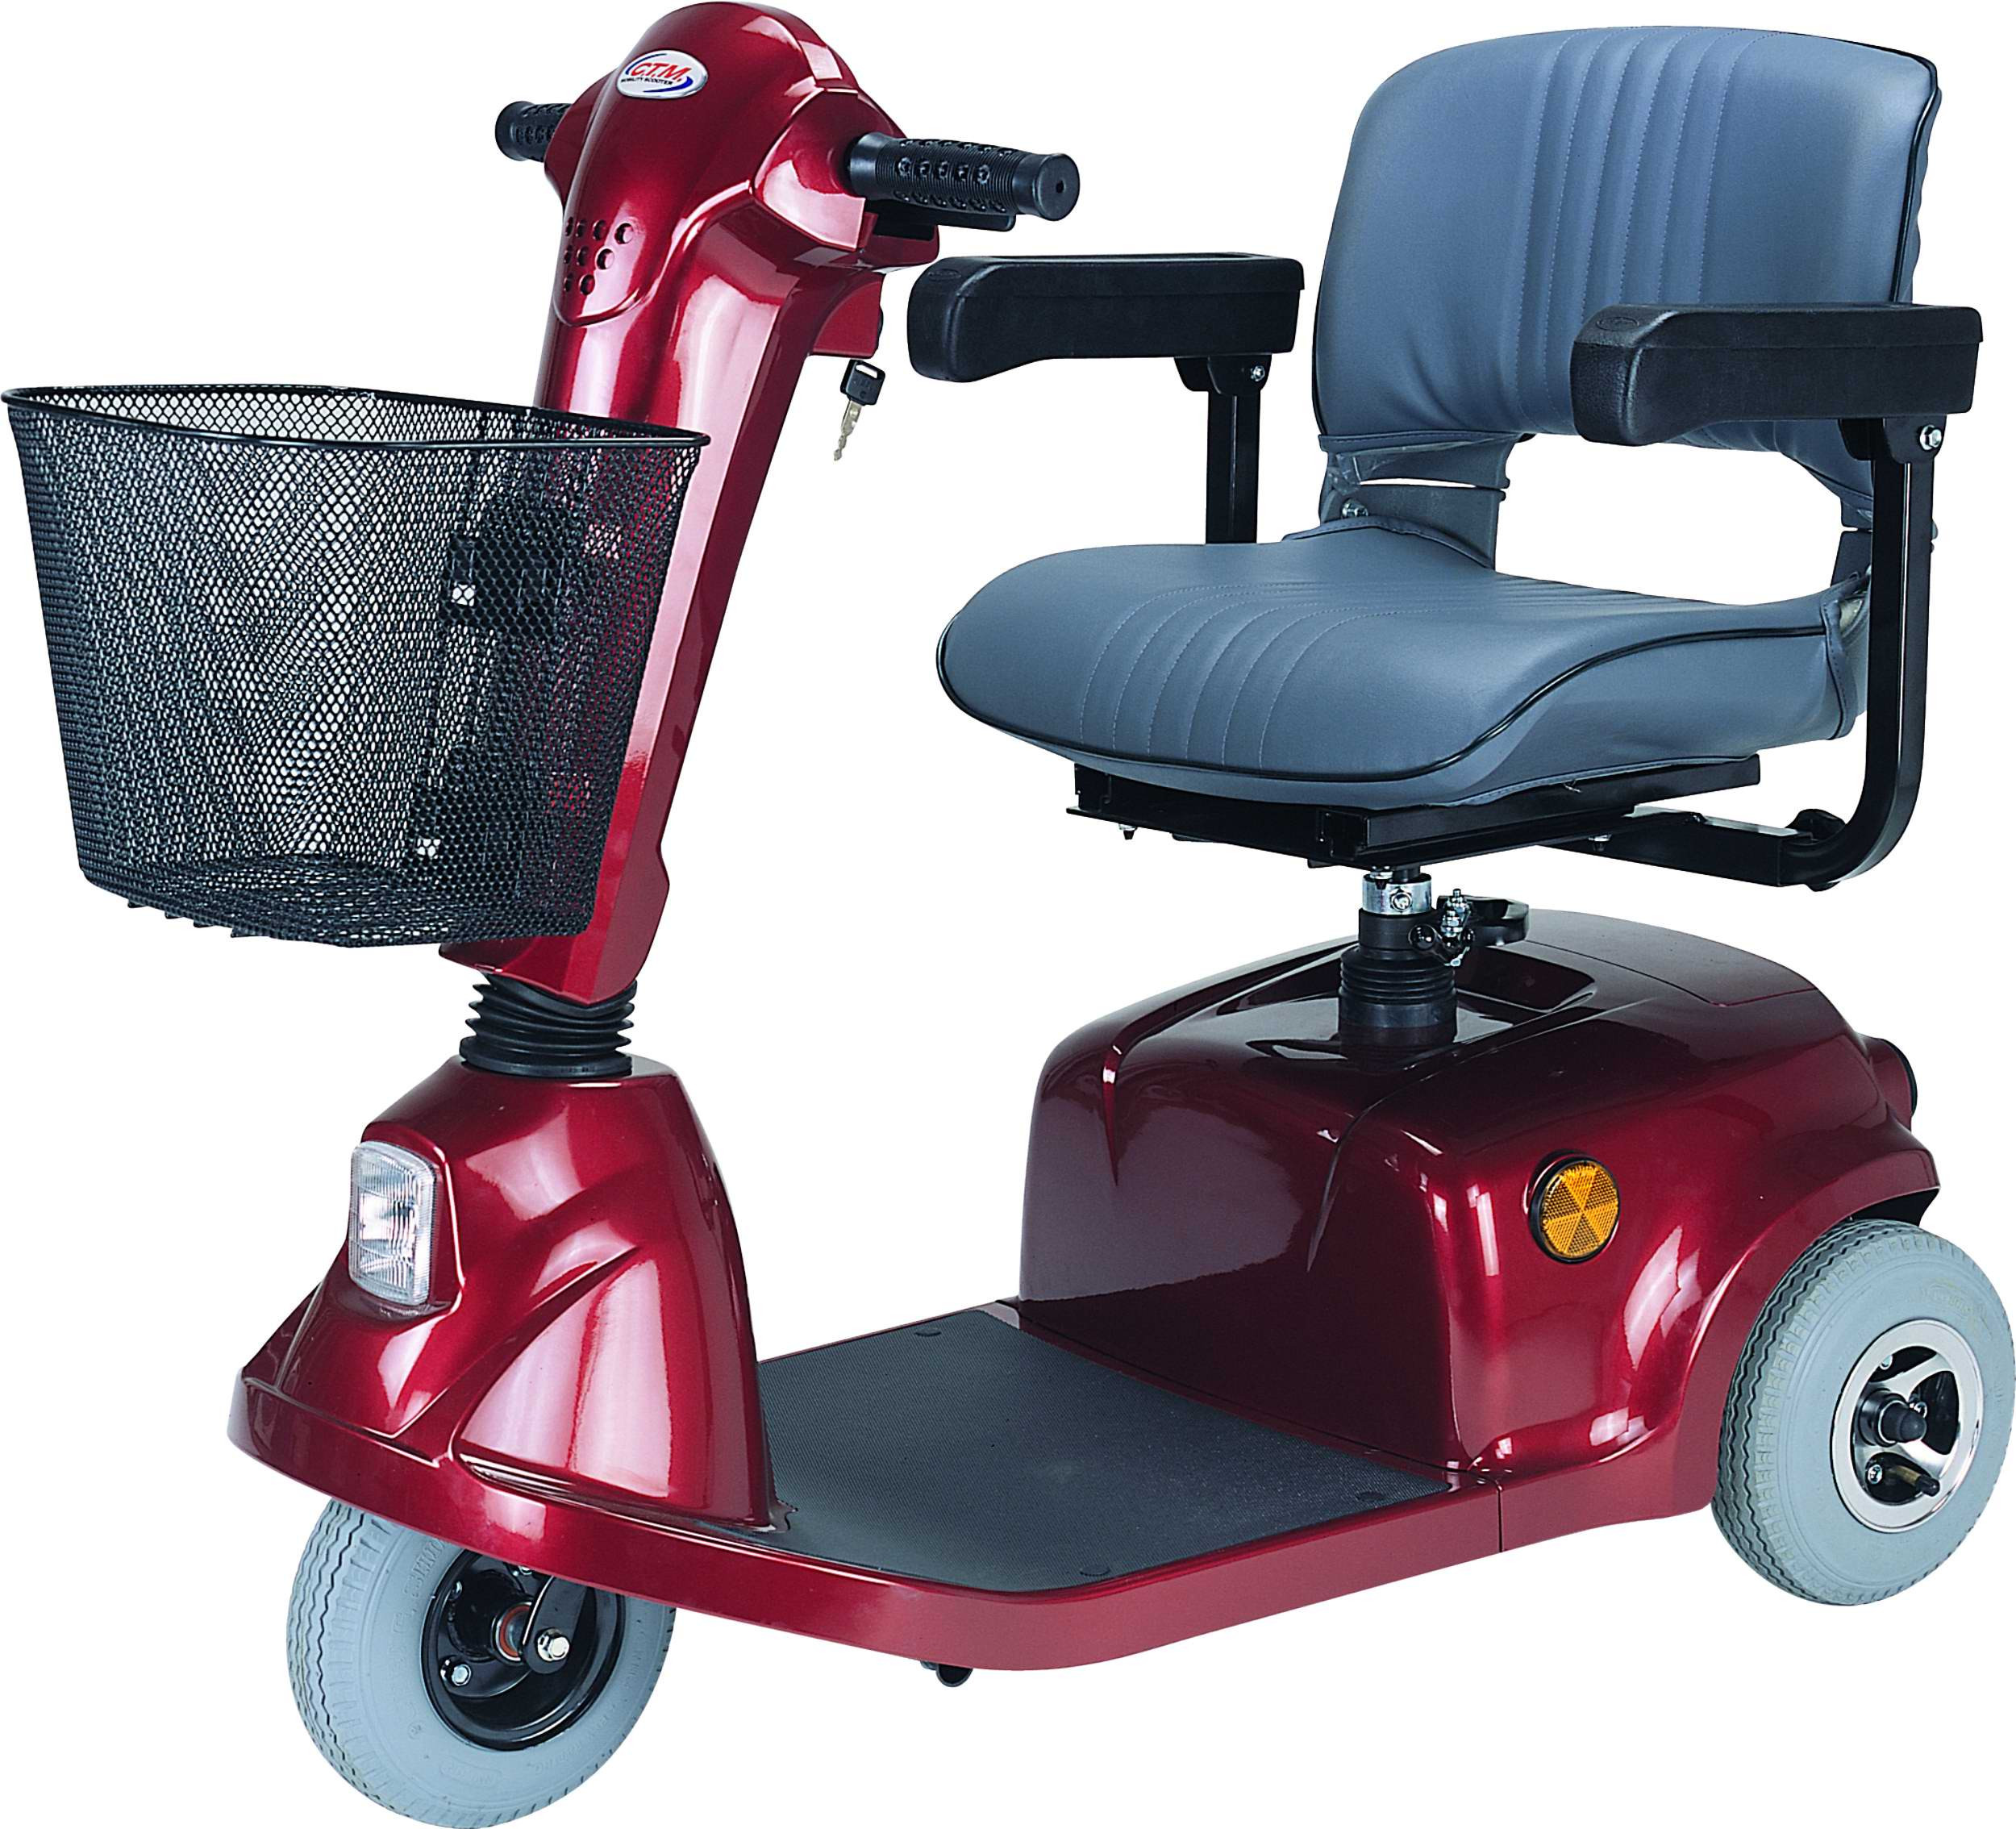 Ctm hs 320 mobility scooter for sale lowest prices for Mobility scooters